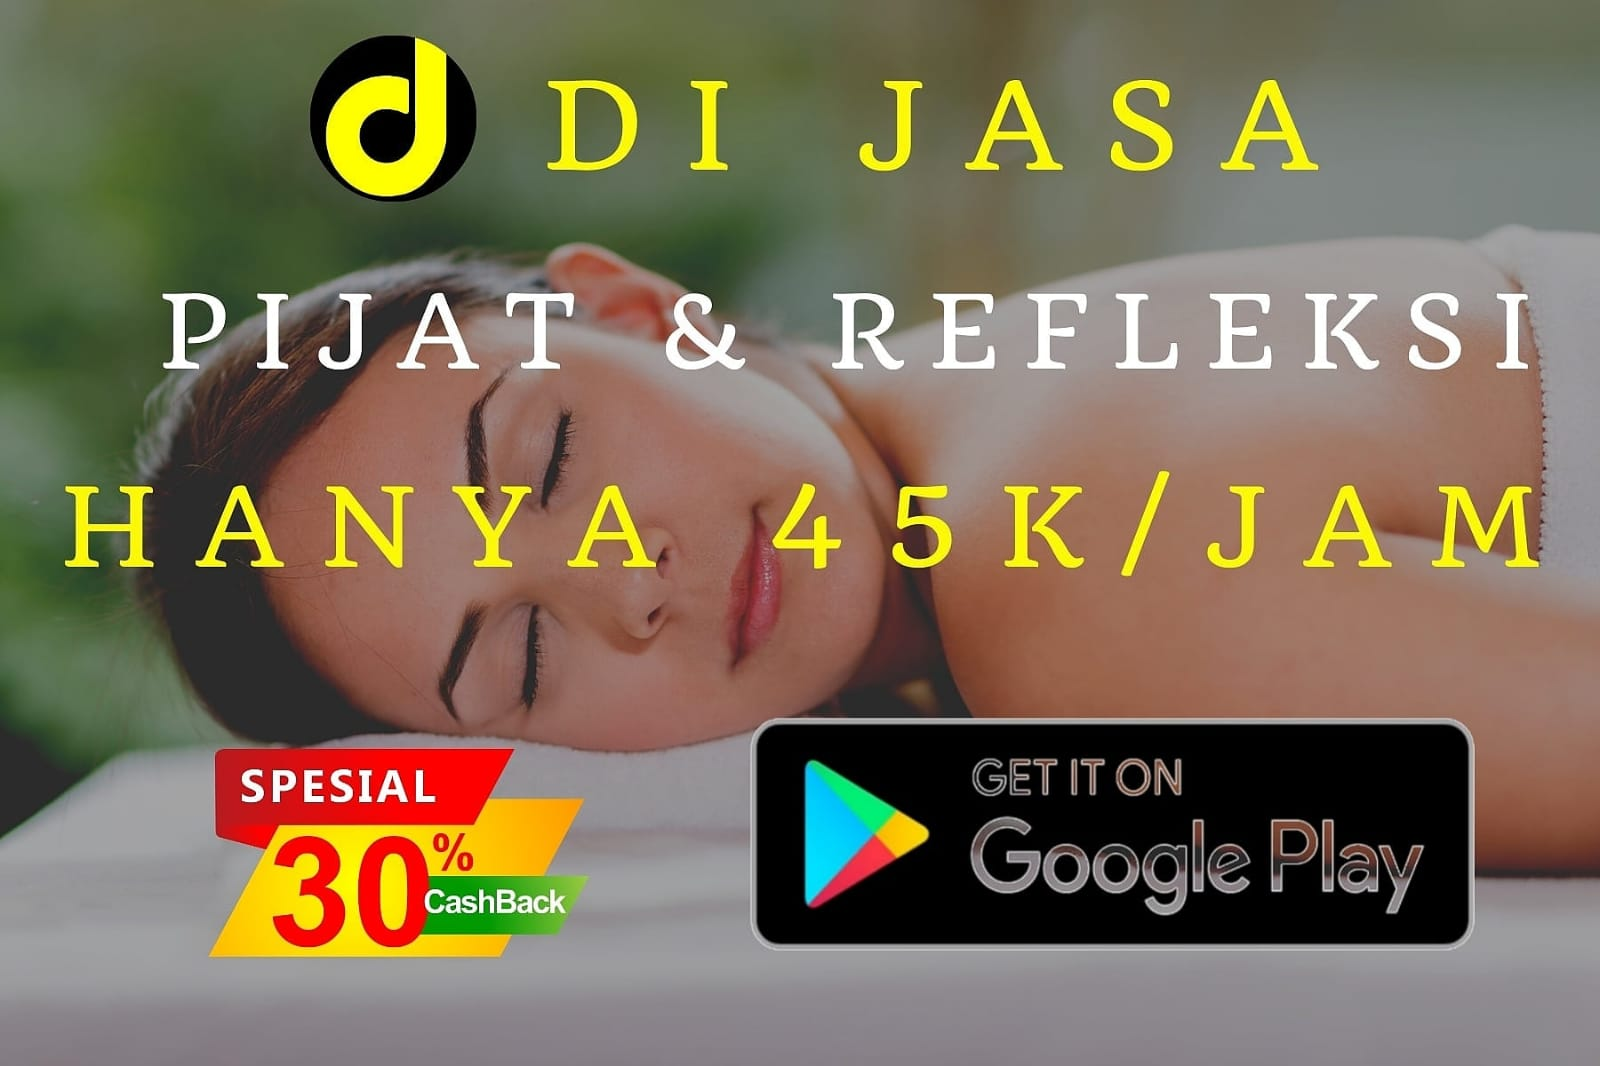 DI JASA MASSAGE CARWASH & CLEANING